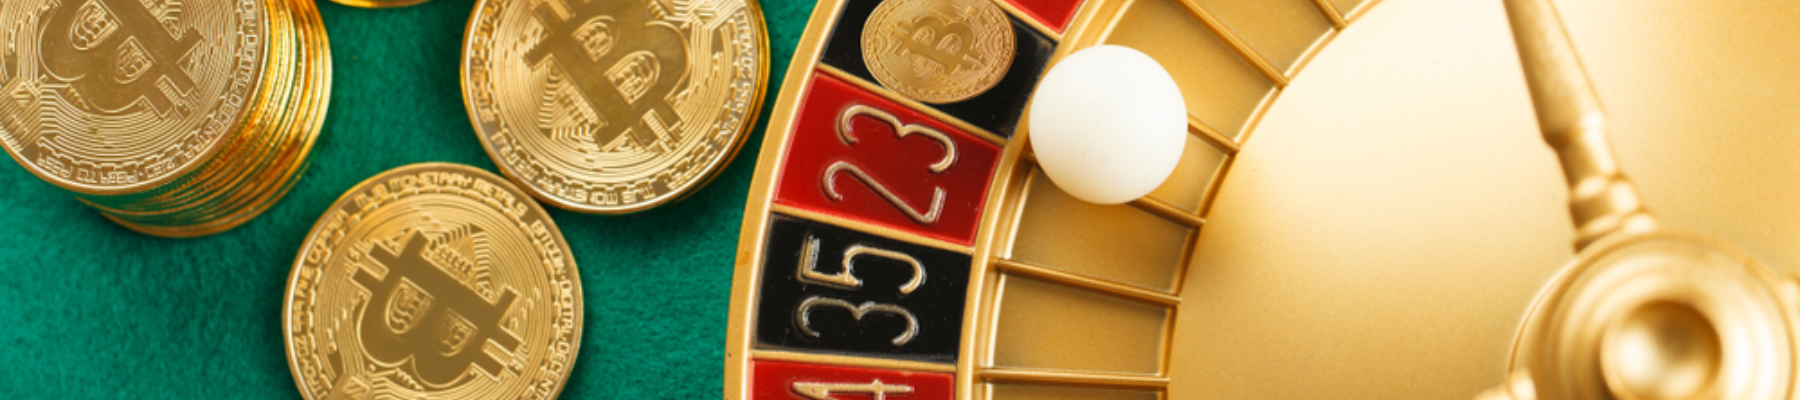 bitcoin roulette banner